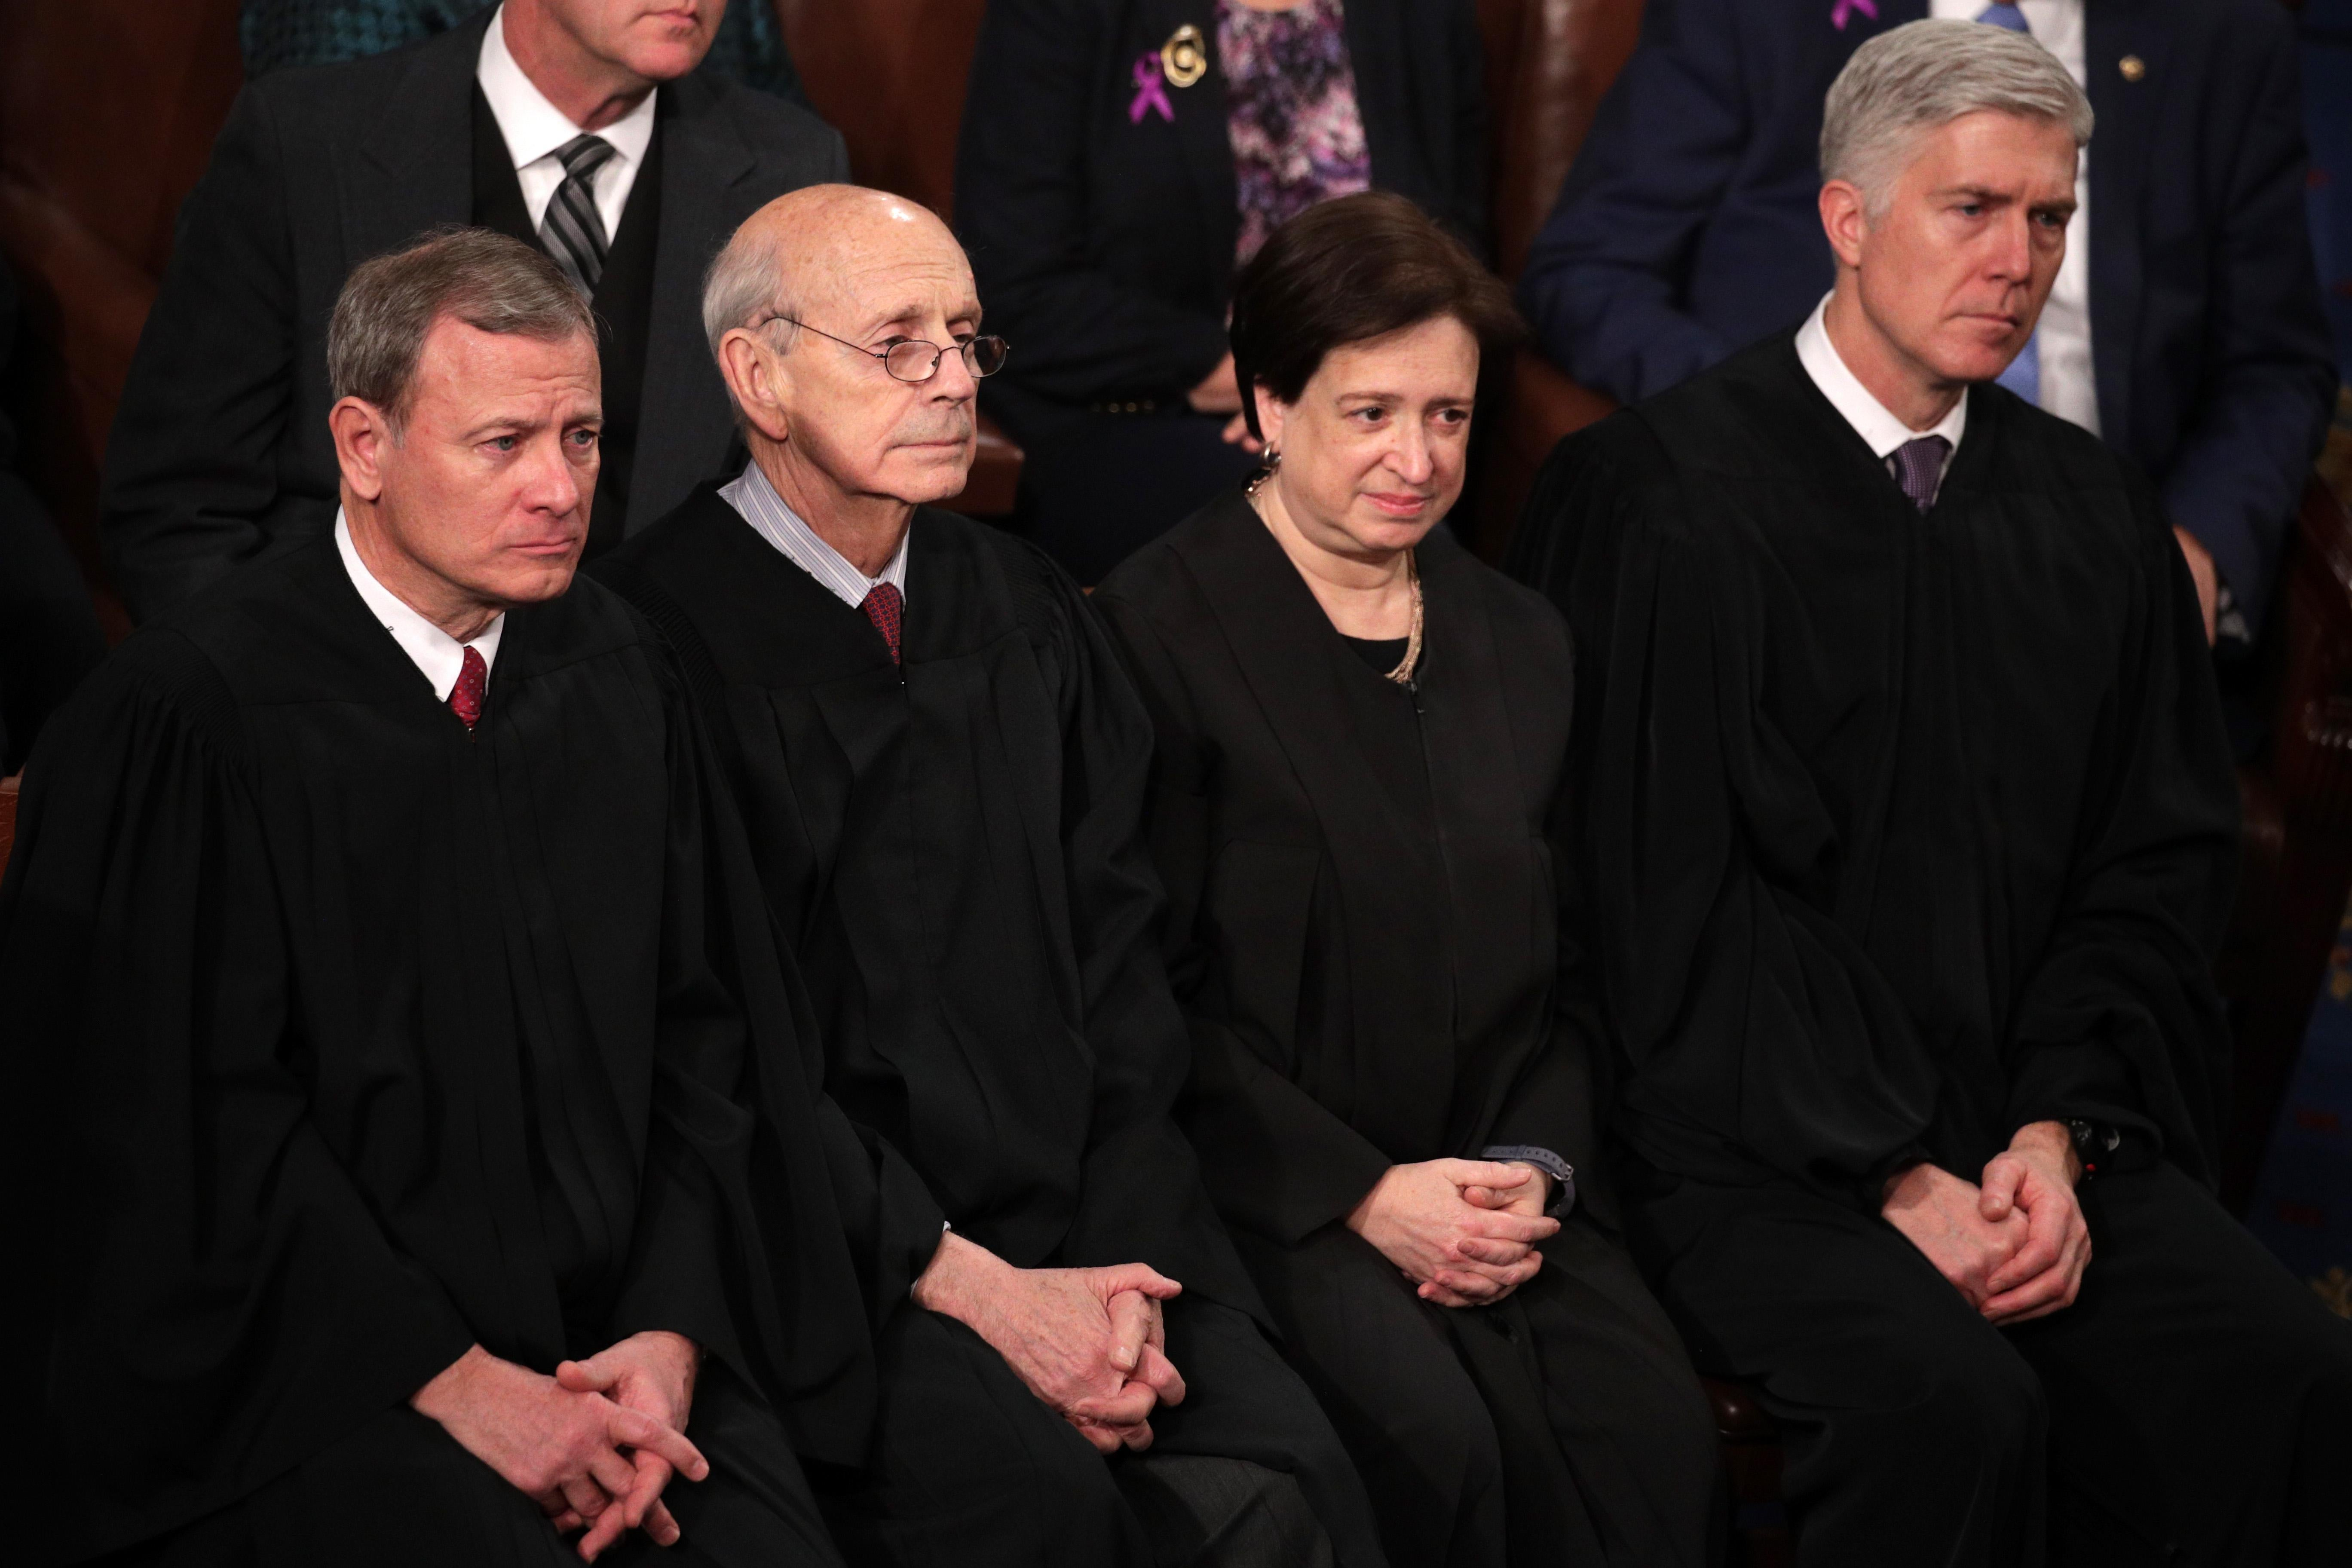 The four justices seated, wearing black robes.